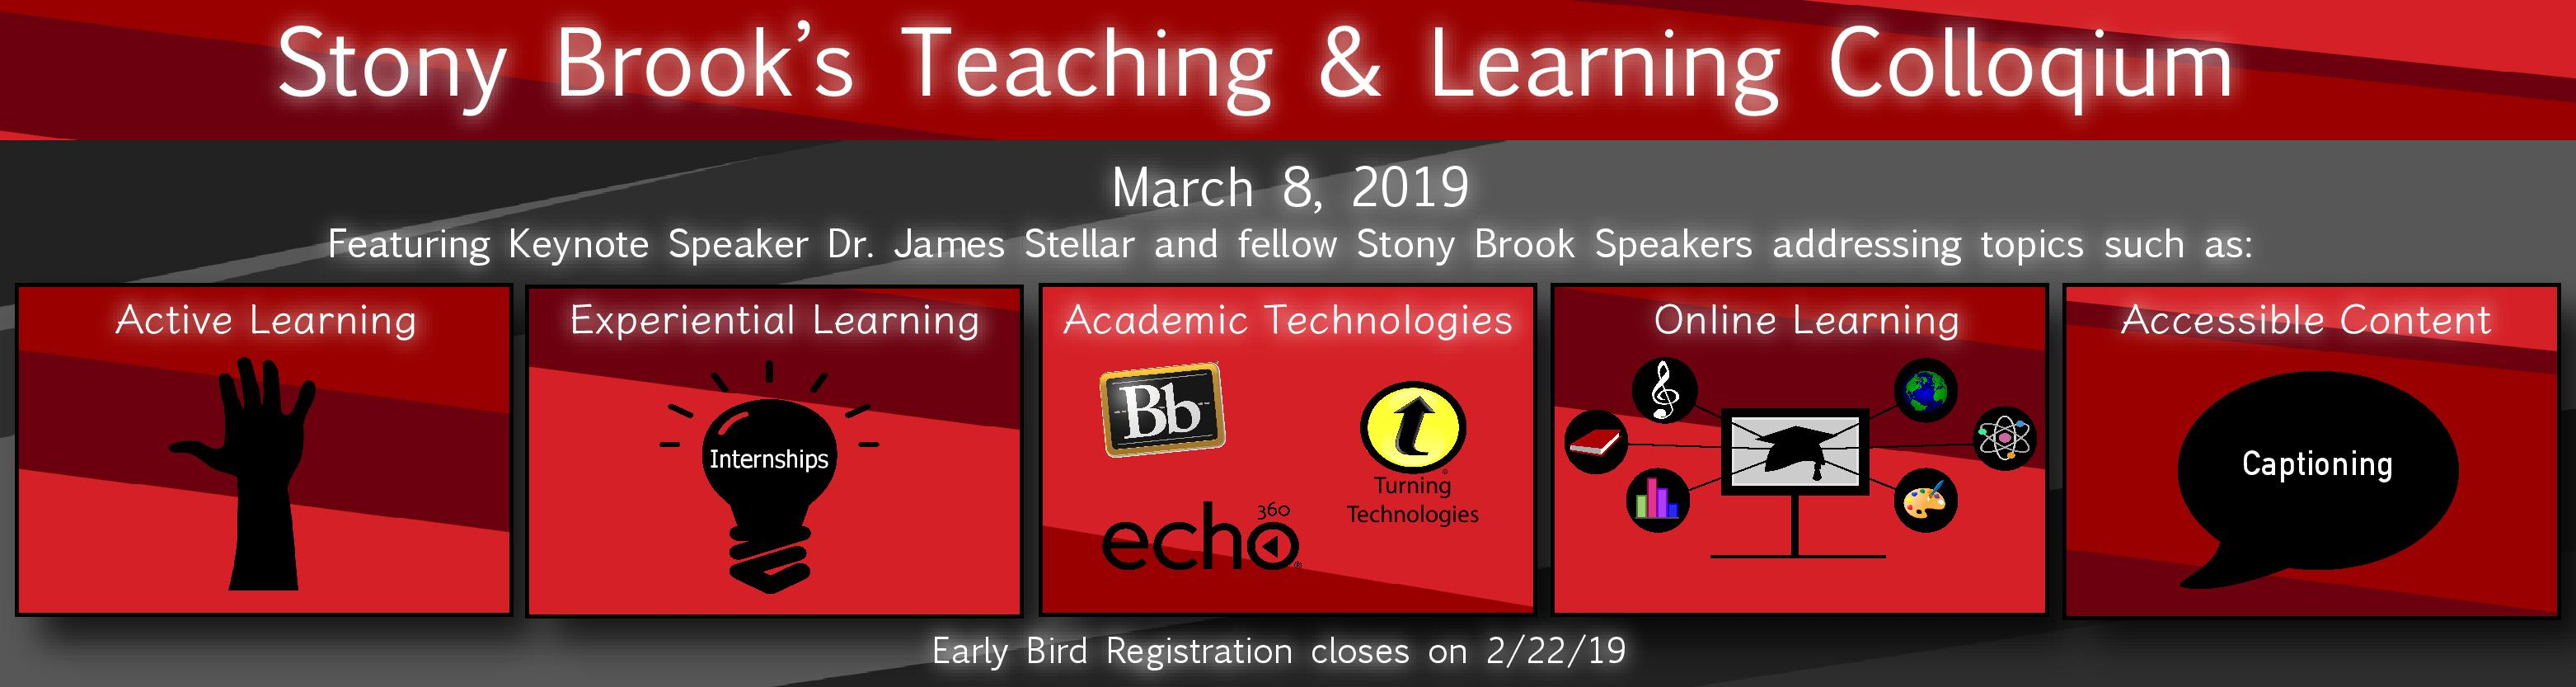 2019 Teaching & Learning Colloquium - Friday 3/8/19